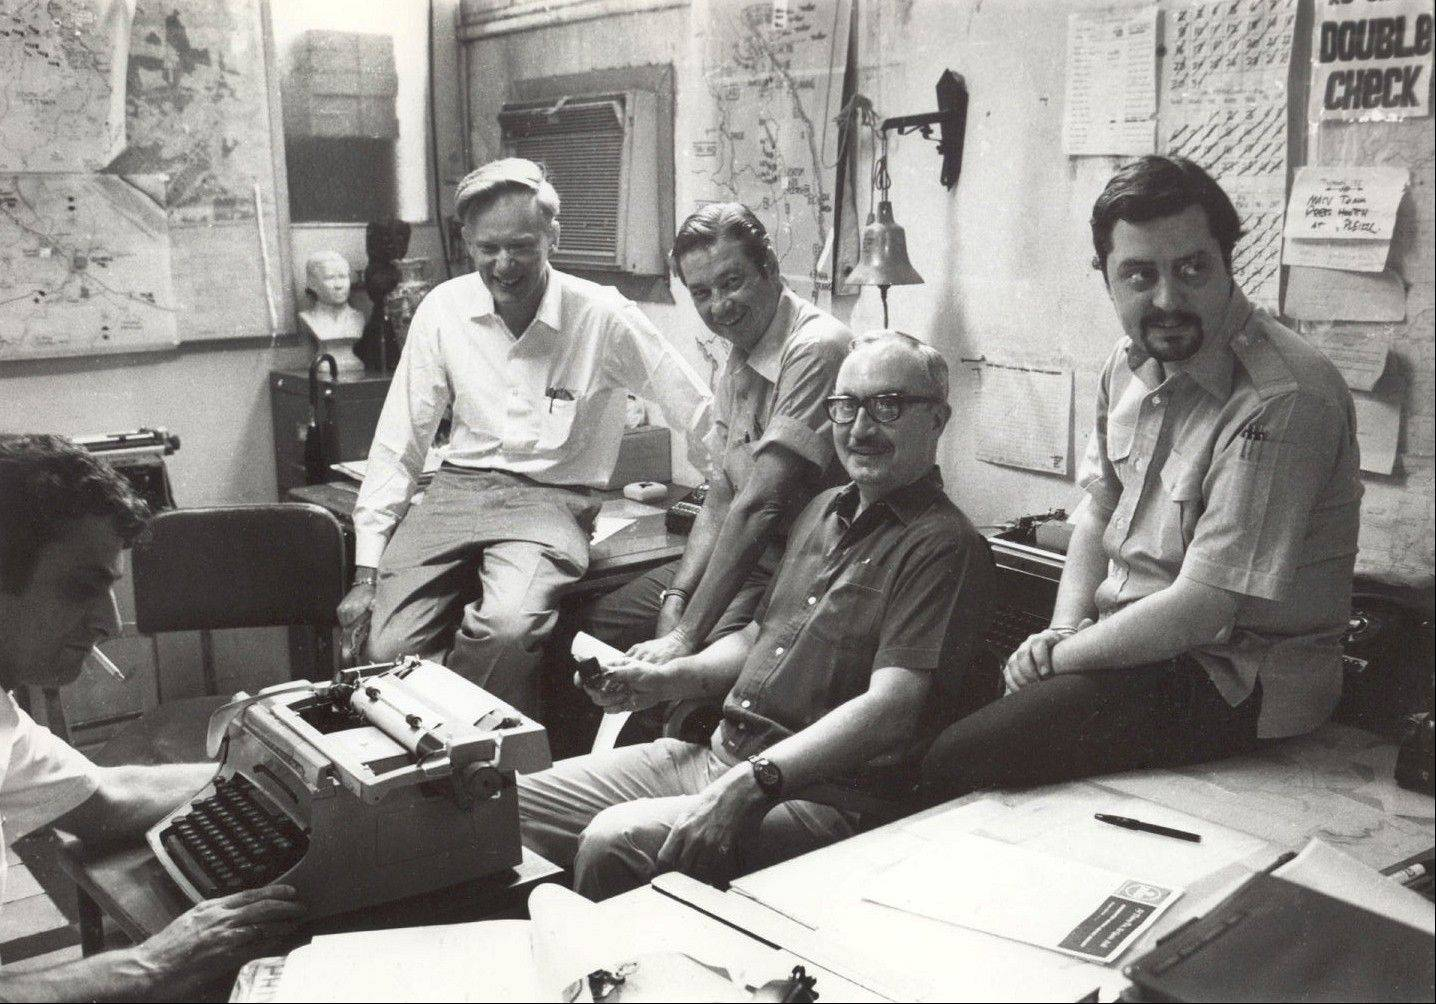 Once-and-future bureau cheifs at The Associated Press� Saigon bureau, from left, George Esper (1973-75), Malcolm Browne (1961-64), George McArthur (1968-69), Edwin Q. White (1965-67), and Richard Pyle (1970-73). White, a Saigon bureau chief for The Associated Press during the U.S. buildup in the Vietnam War, has died at age 90.